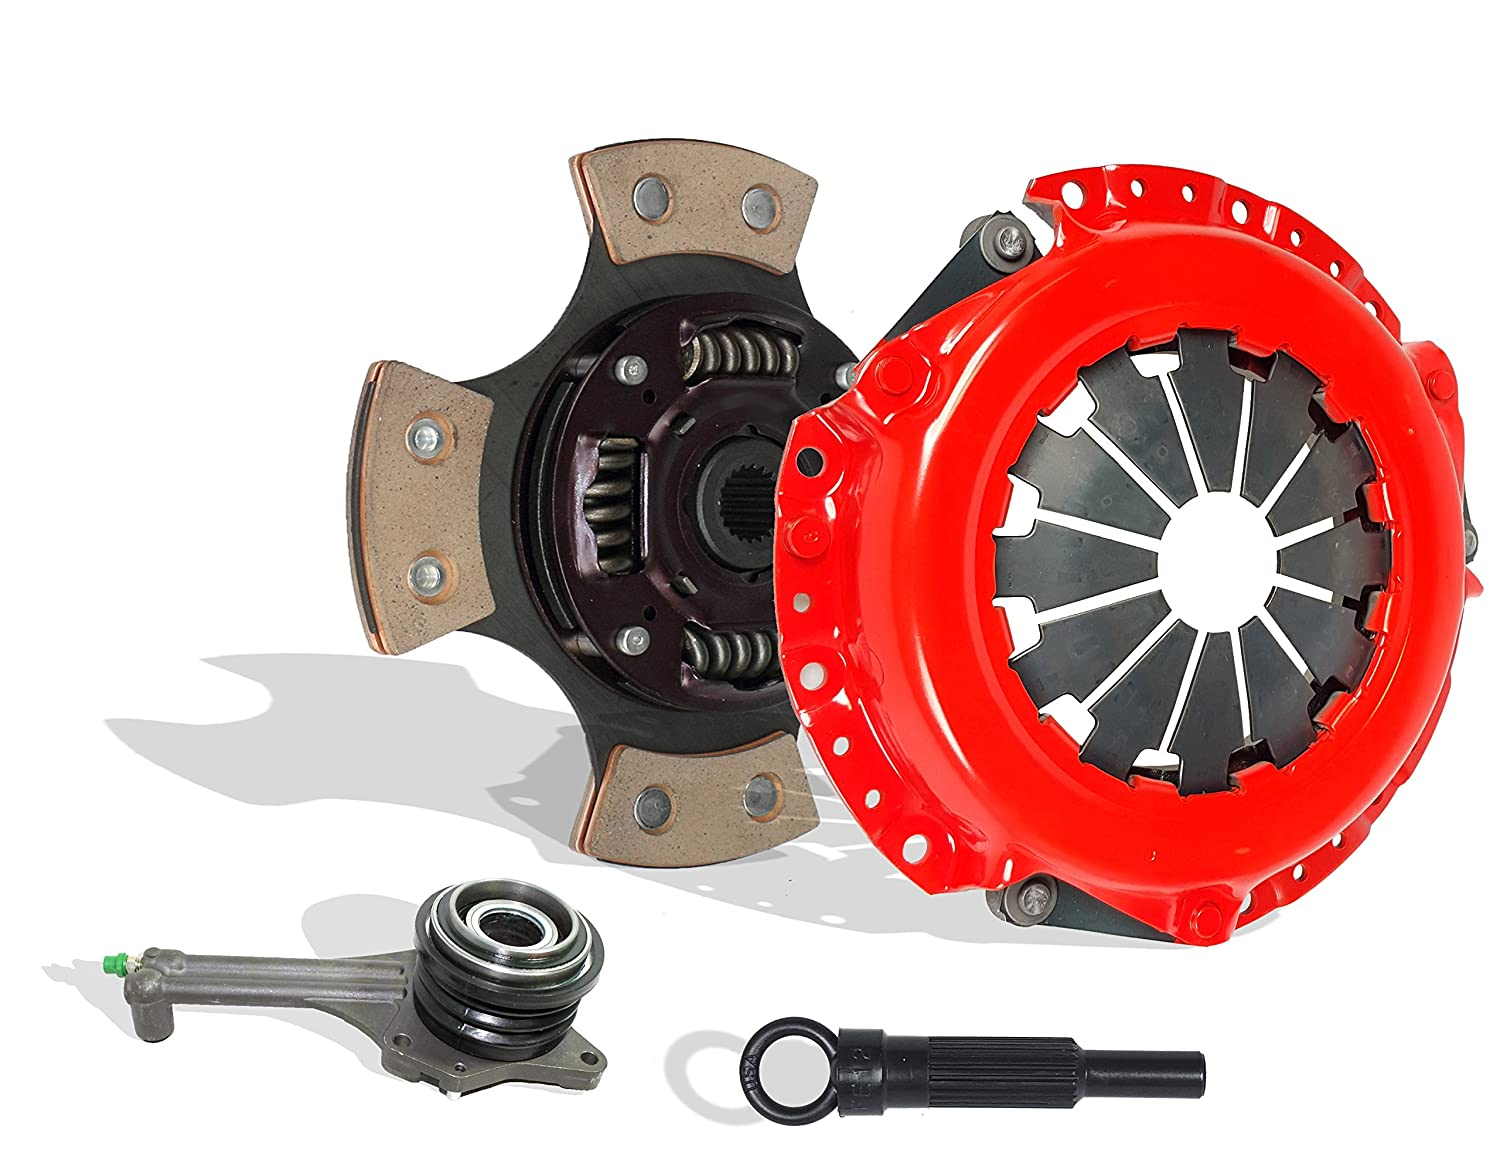 Clutch And Slave Kit Works With Mitsubishi Lancer Rally Edition Ls Es 2.0L l4 GAS SOHC Naturally Aspirated 2.0L l4 GAS DOHC Turbocharged (5 Speed Trans; ...